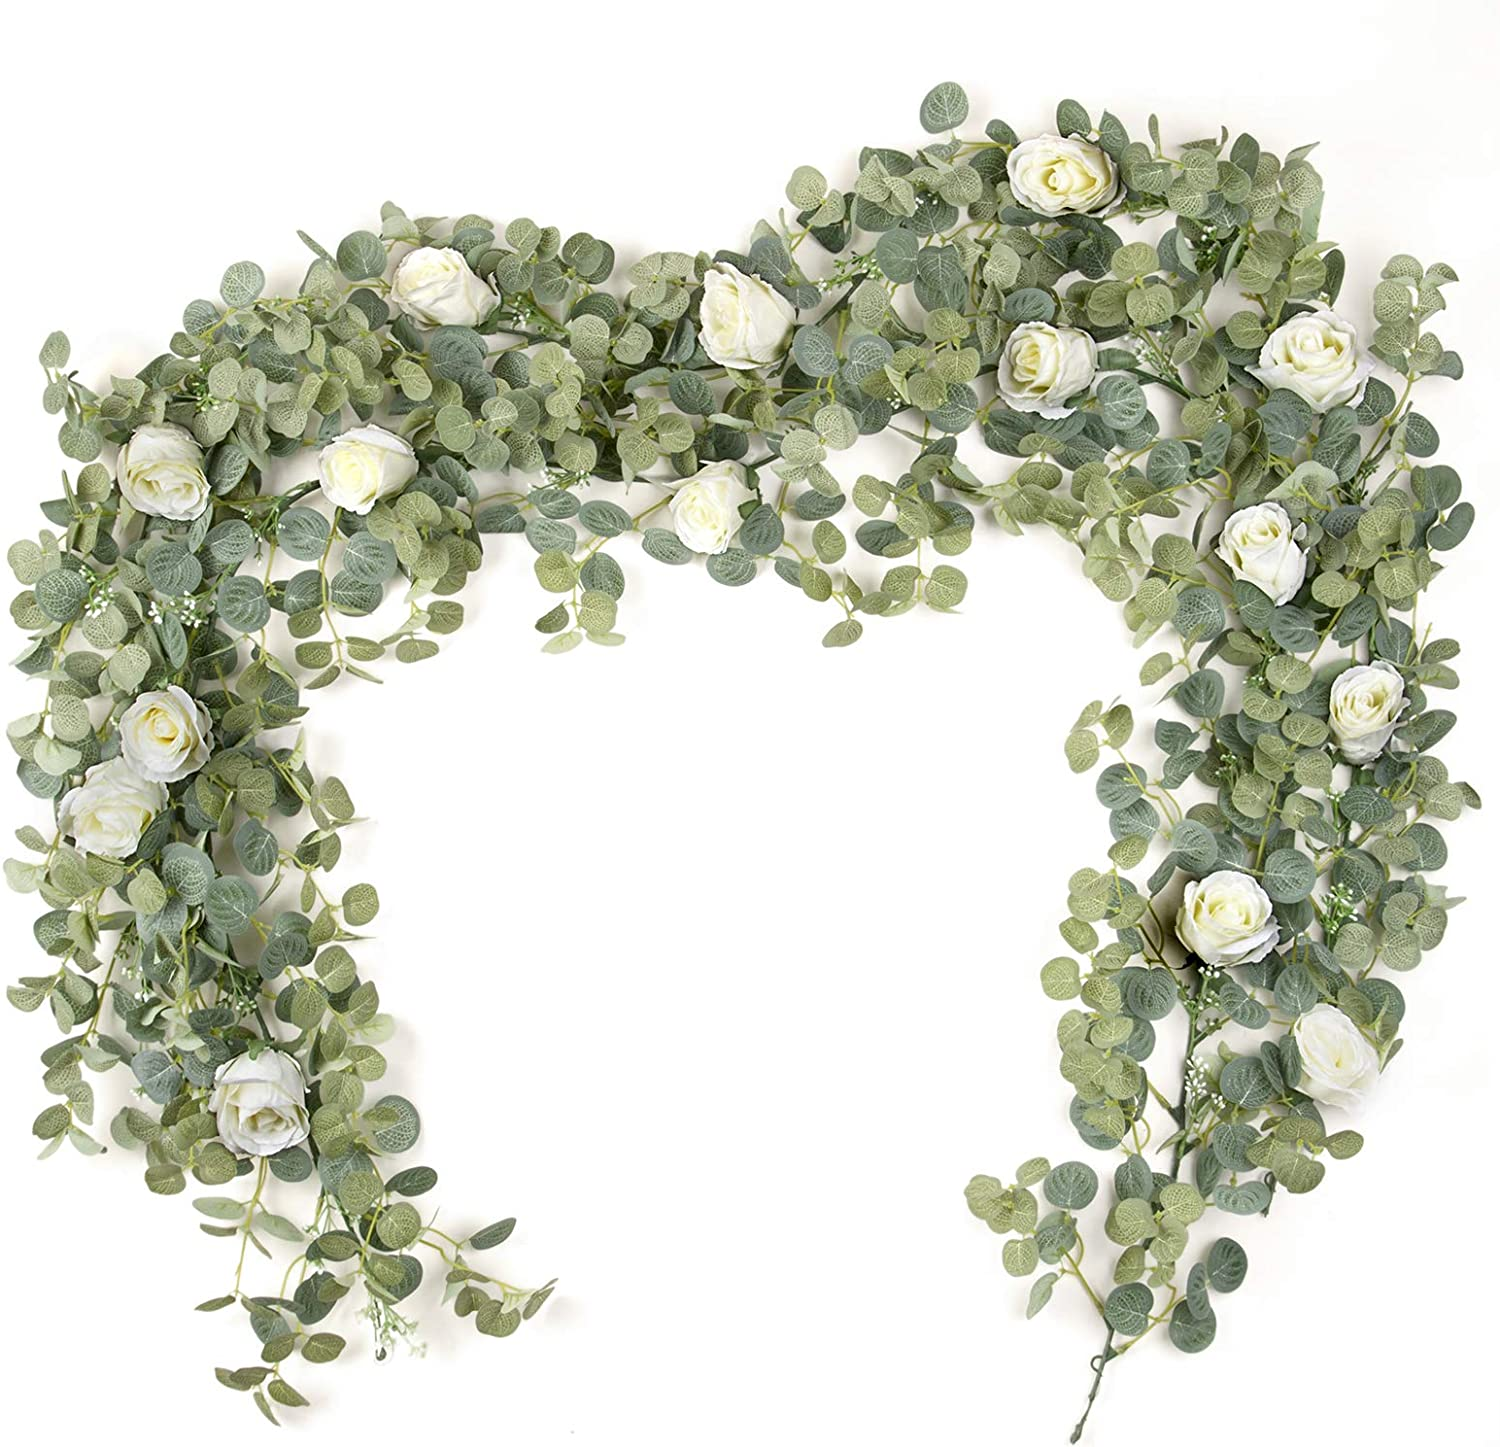 ZIFTY 2-Pcs 5.9FT Artificial Eucalyptus Garland with Flower Fake Greenery Vines and Leaves for Arch Arrangement Table Runner Wedding Floral Backdrop Wall Decor (Rose)